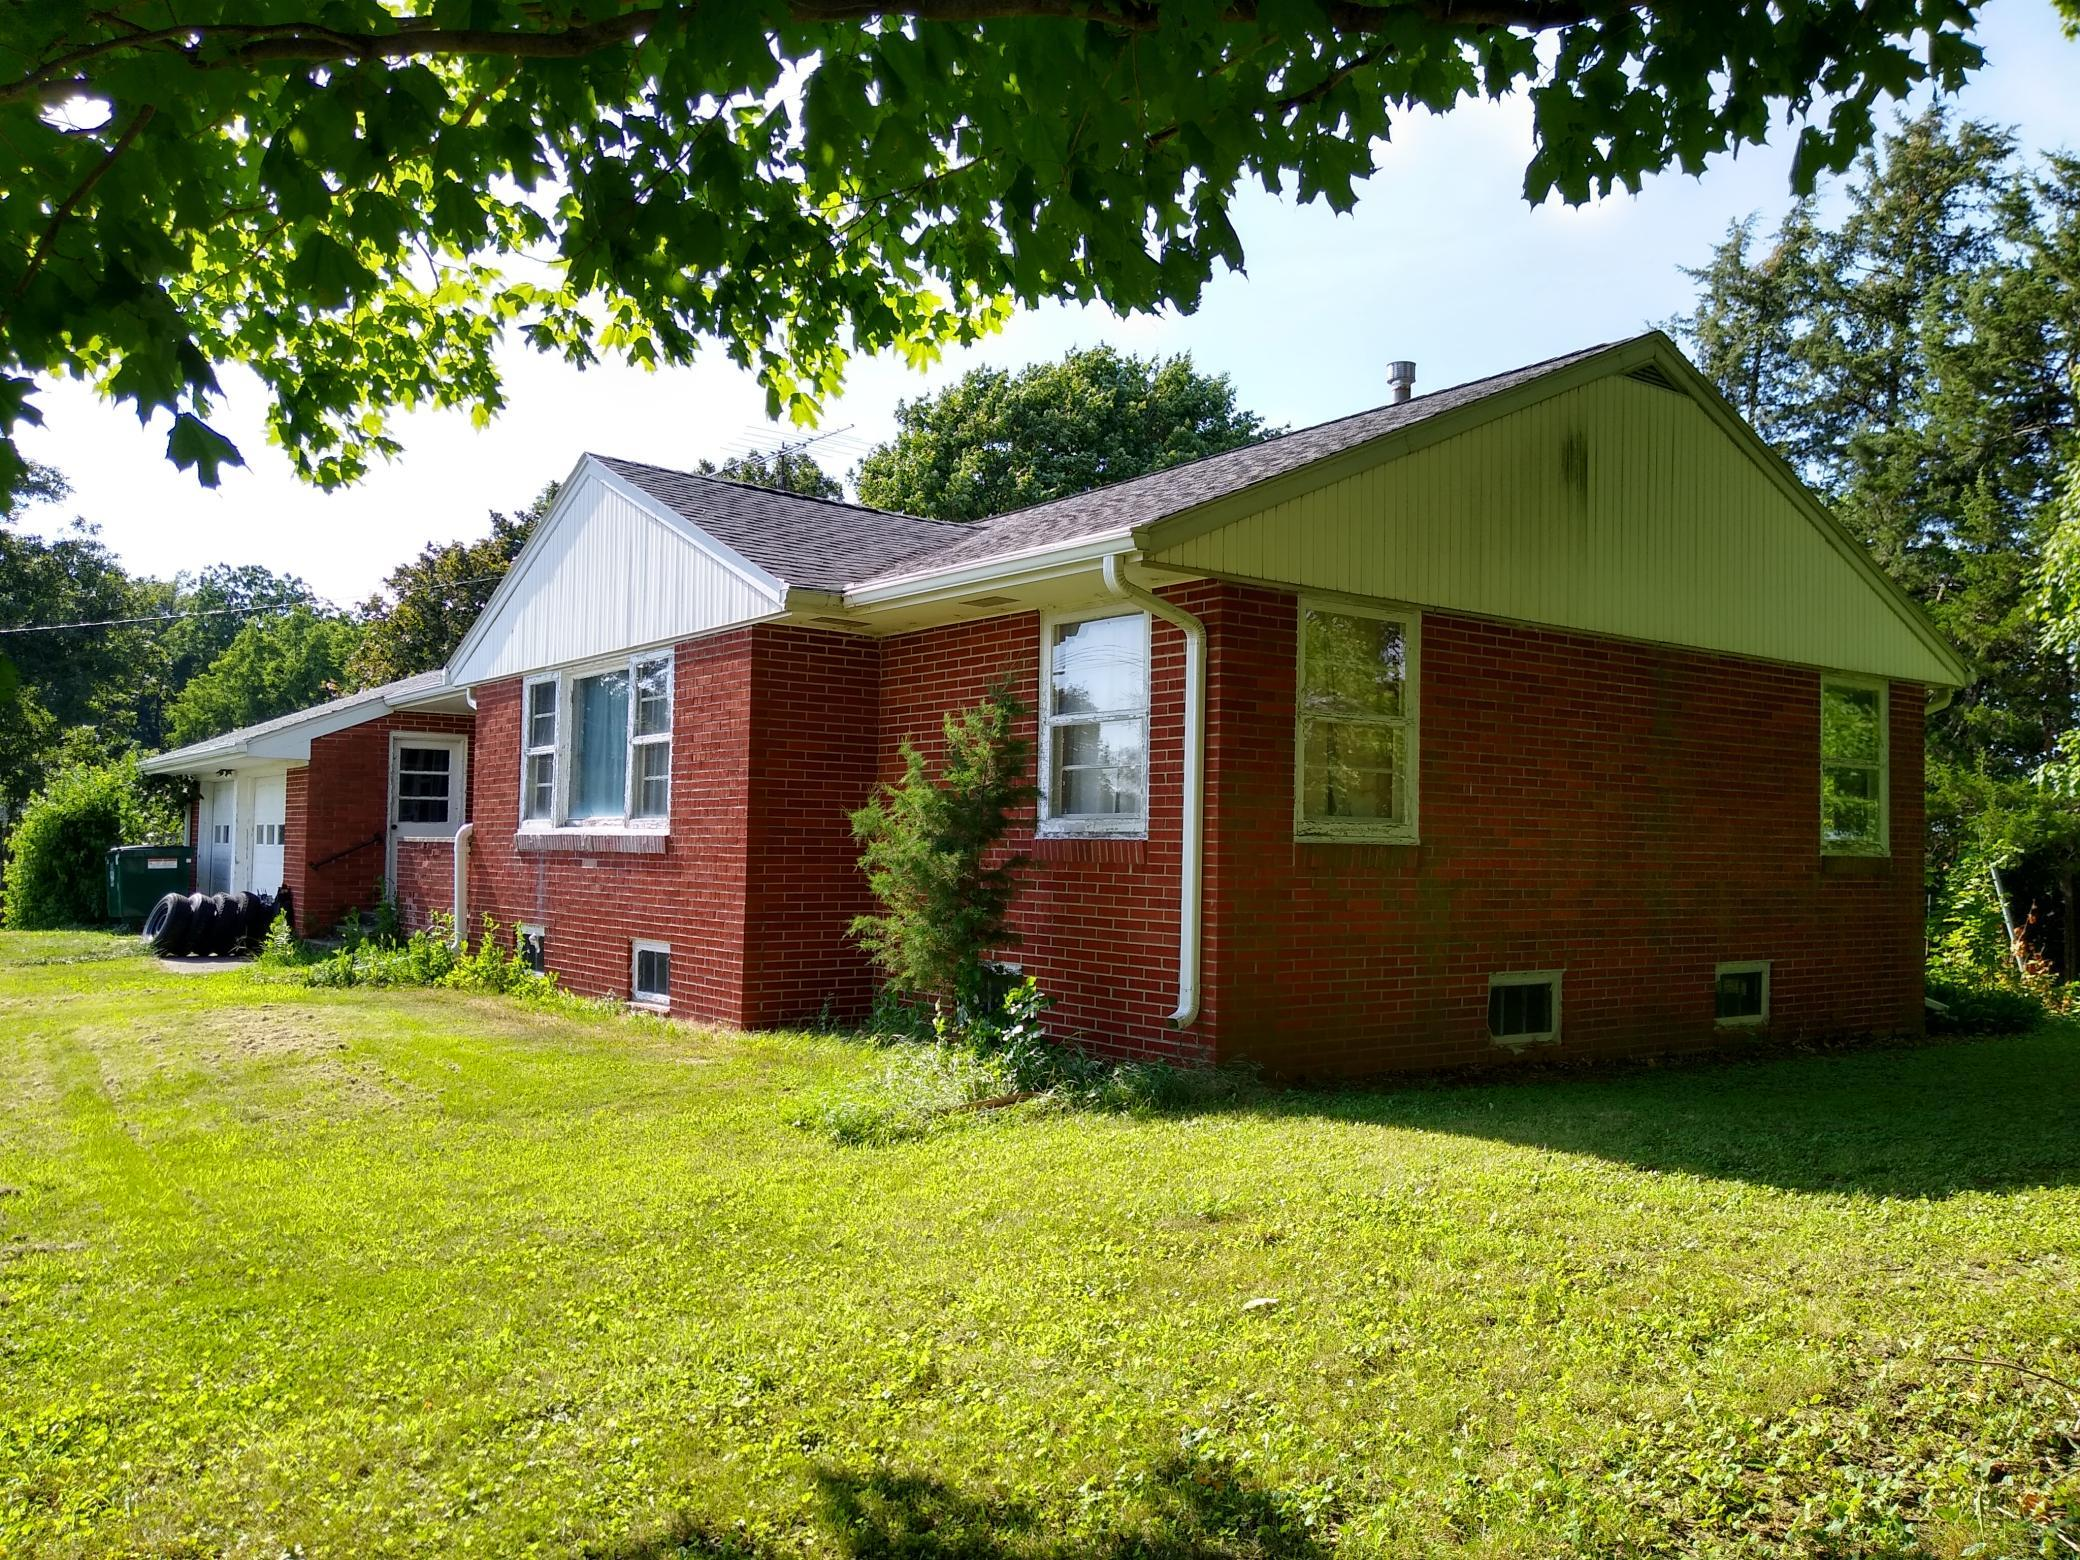 14966 Highway 6, Grinnell, Iowa 50112-1734, 3 Bedrooms Bedrooms, ,1 BathroomBathrooms,Single Family,For Sale,Highway 6,5629868